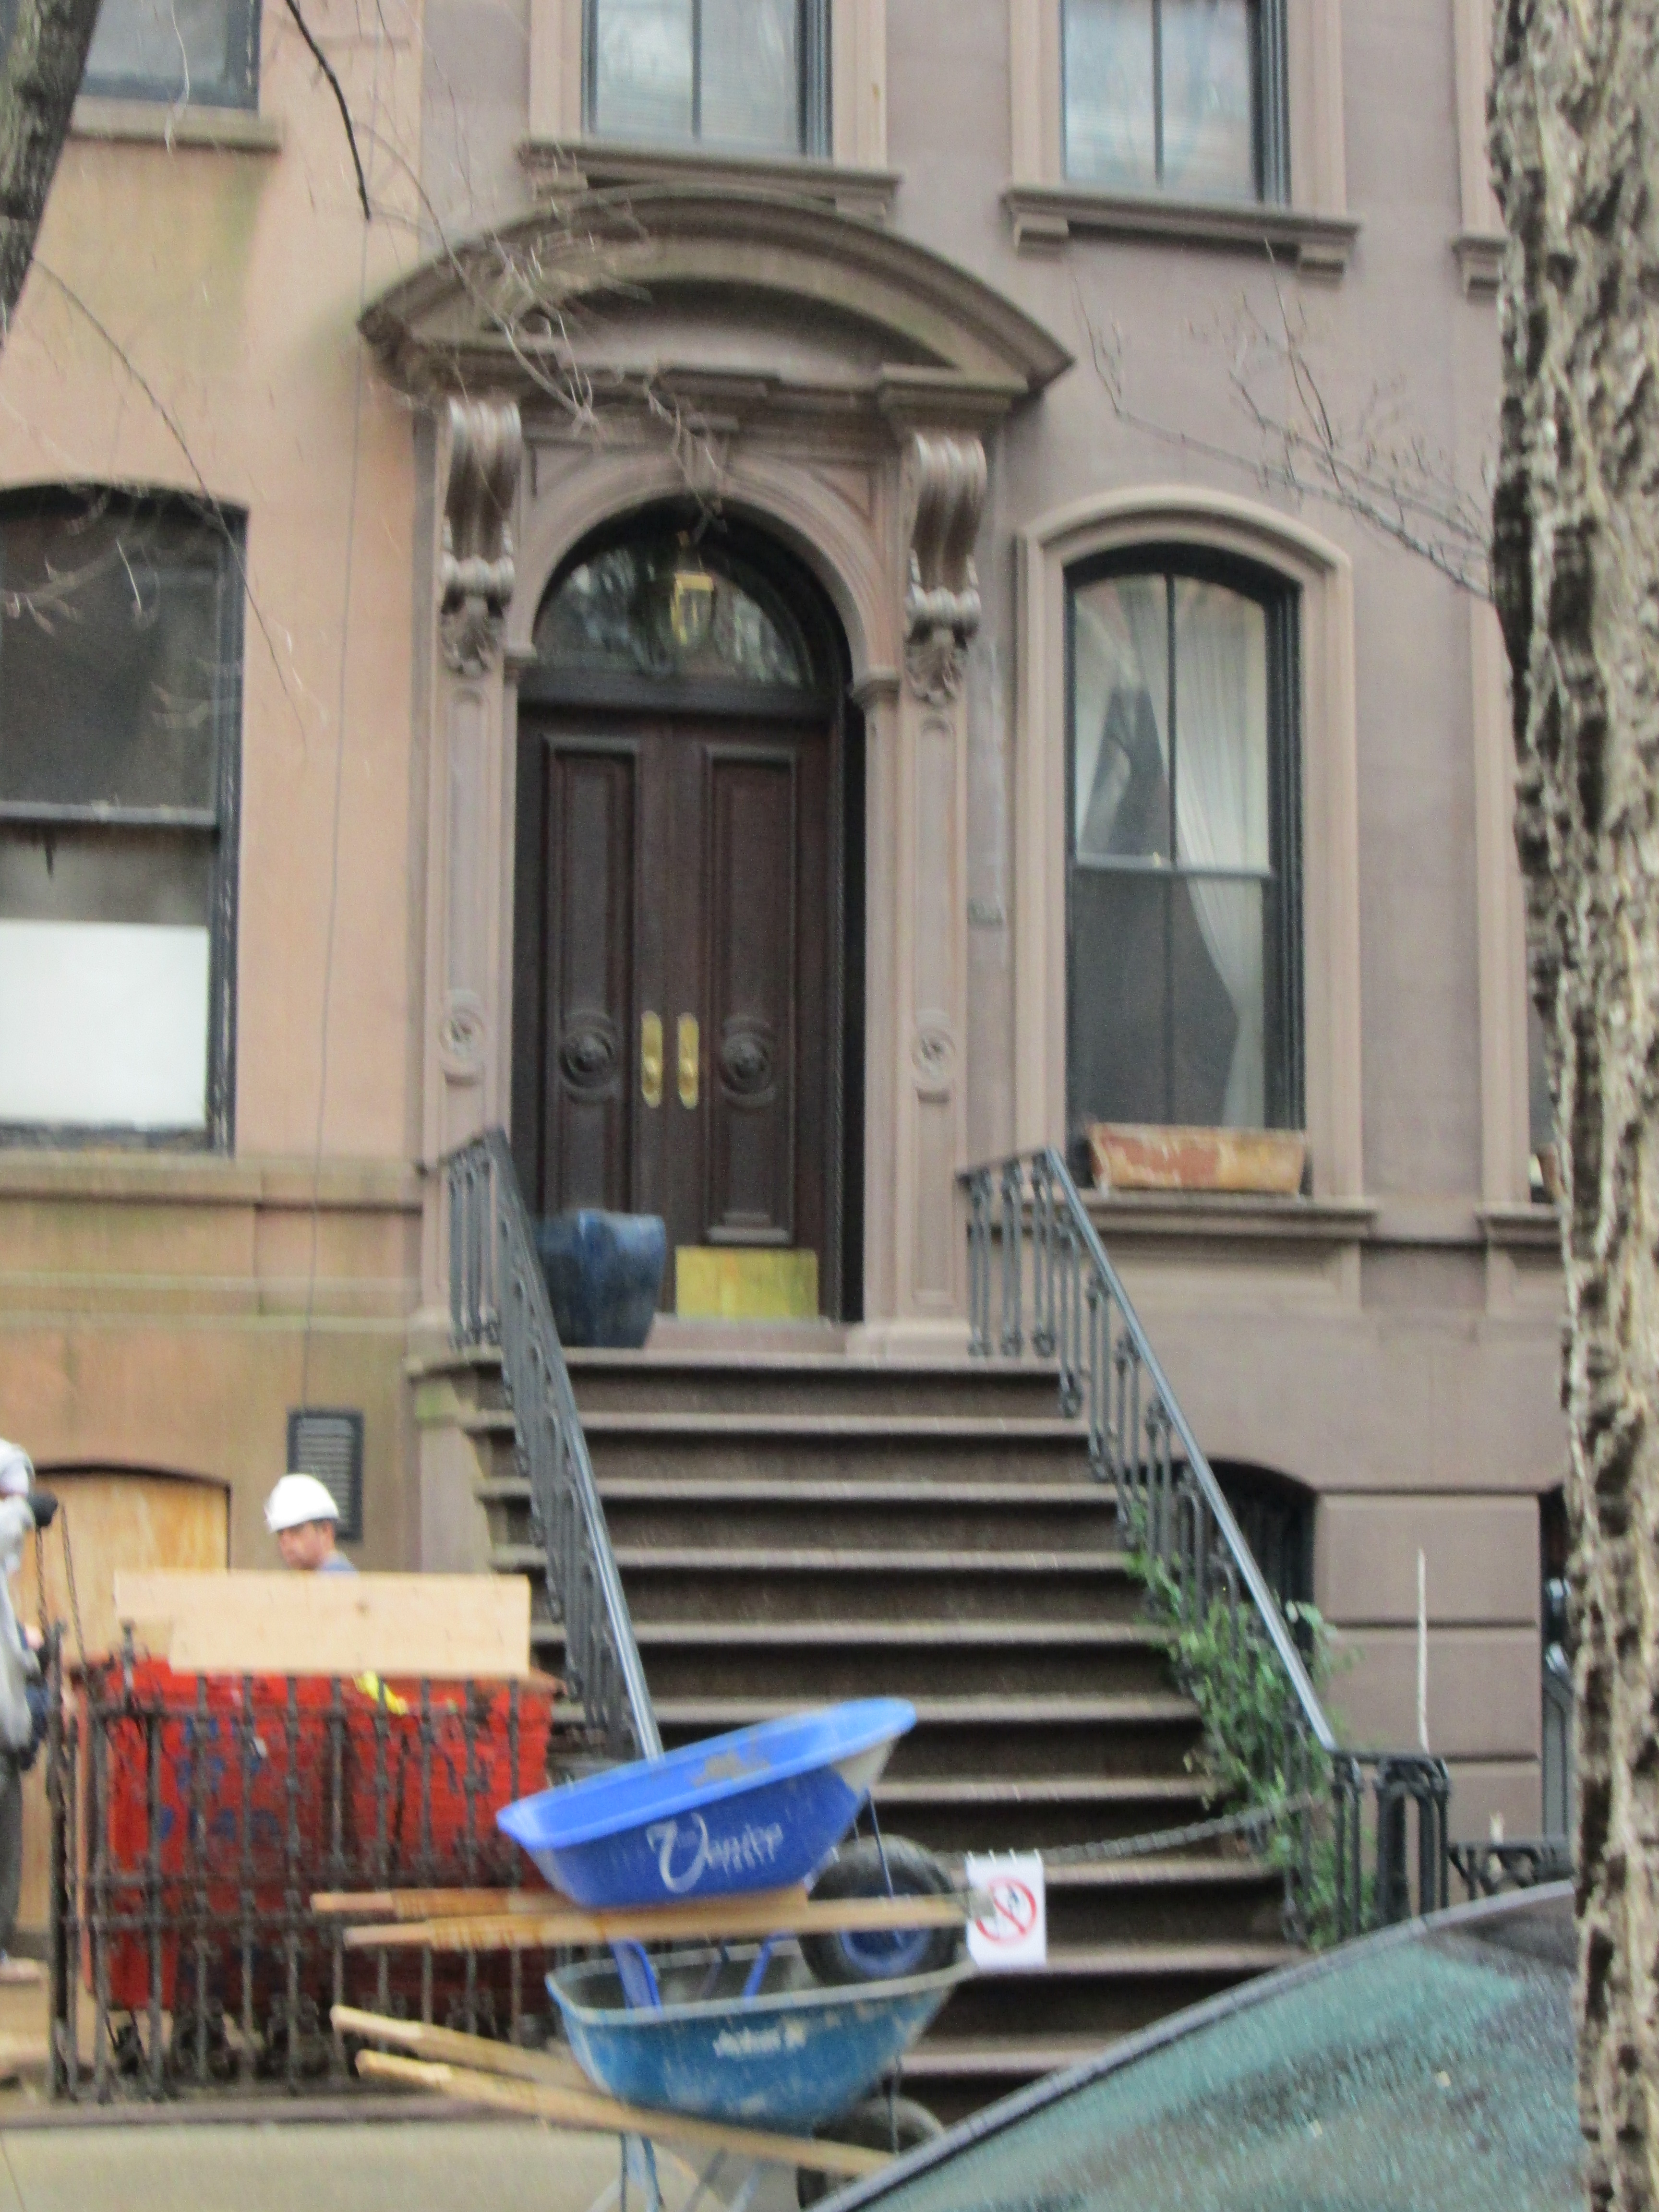 Our NYC guide showed us Carrie's stoop for the Sex and the City fans!